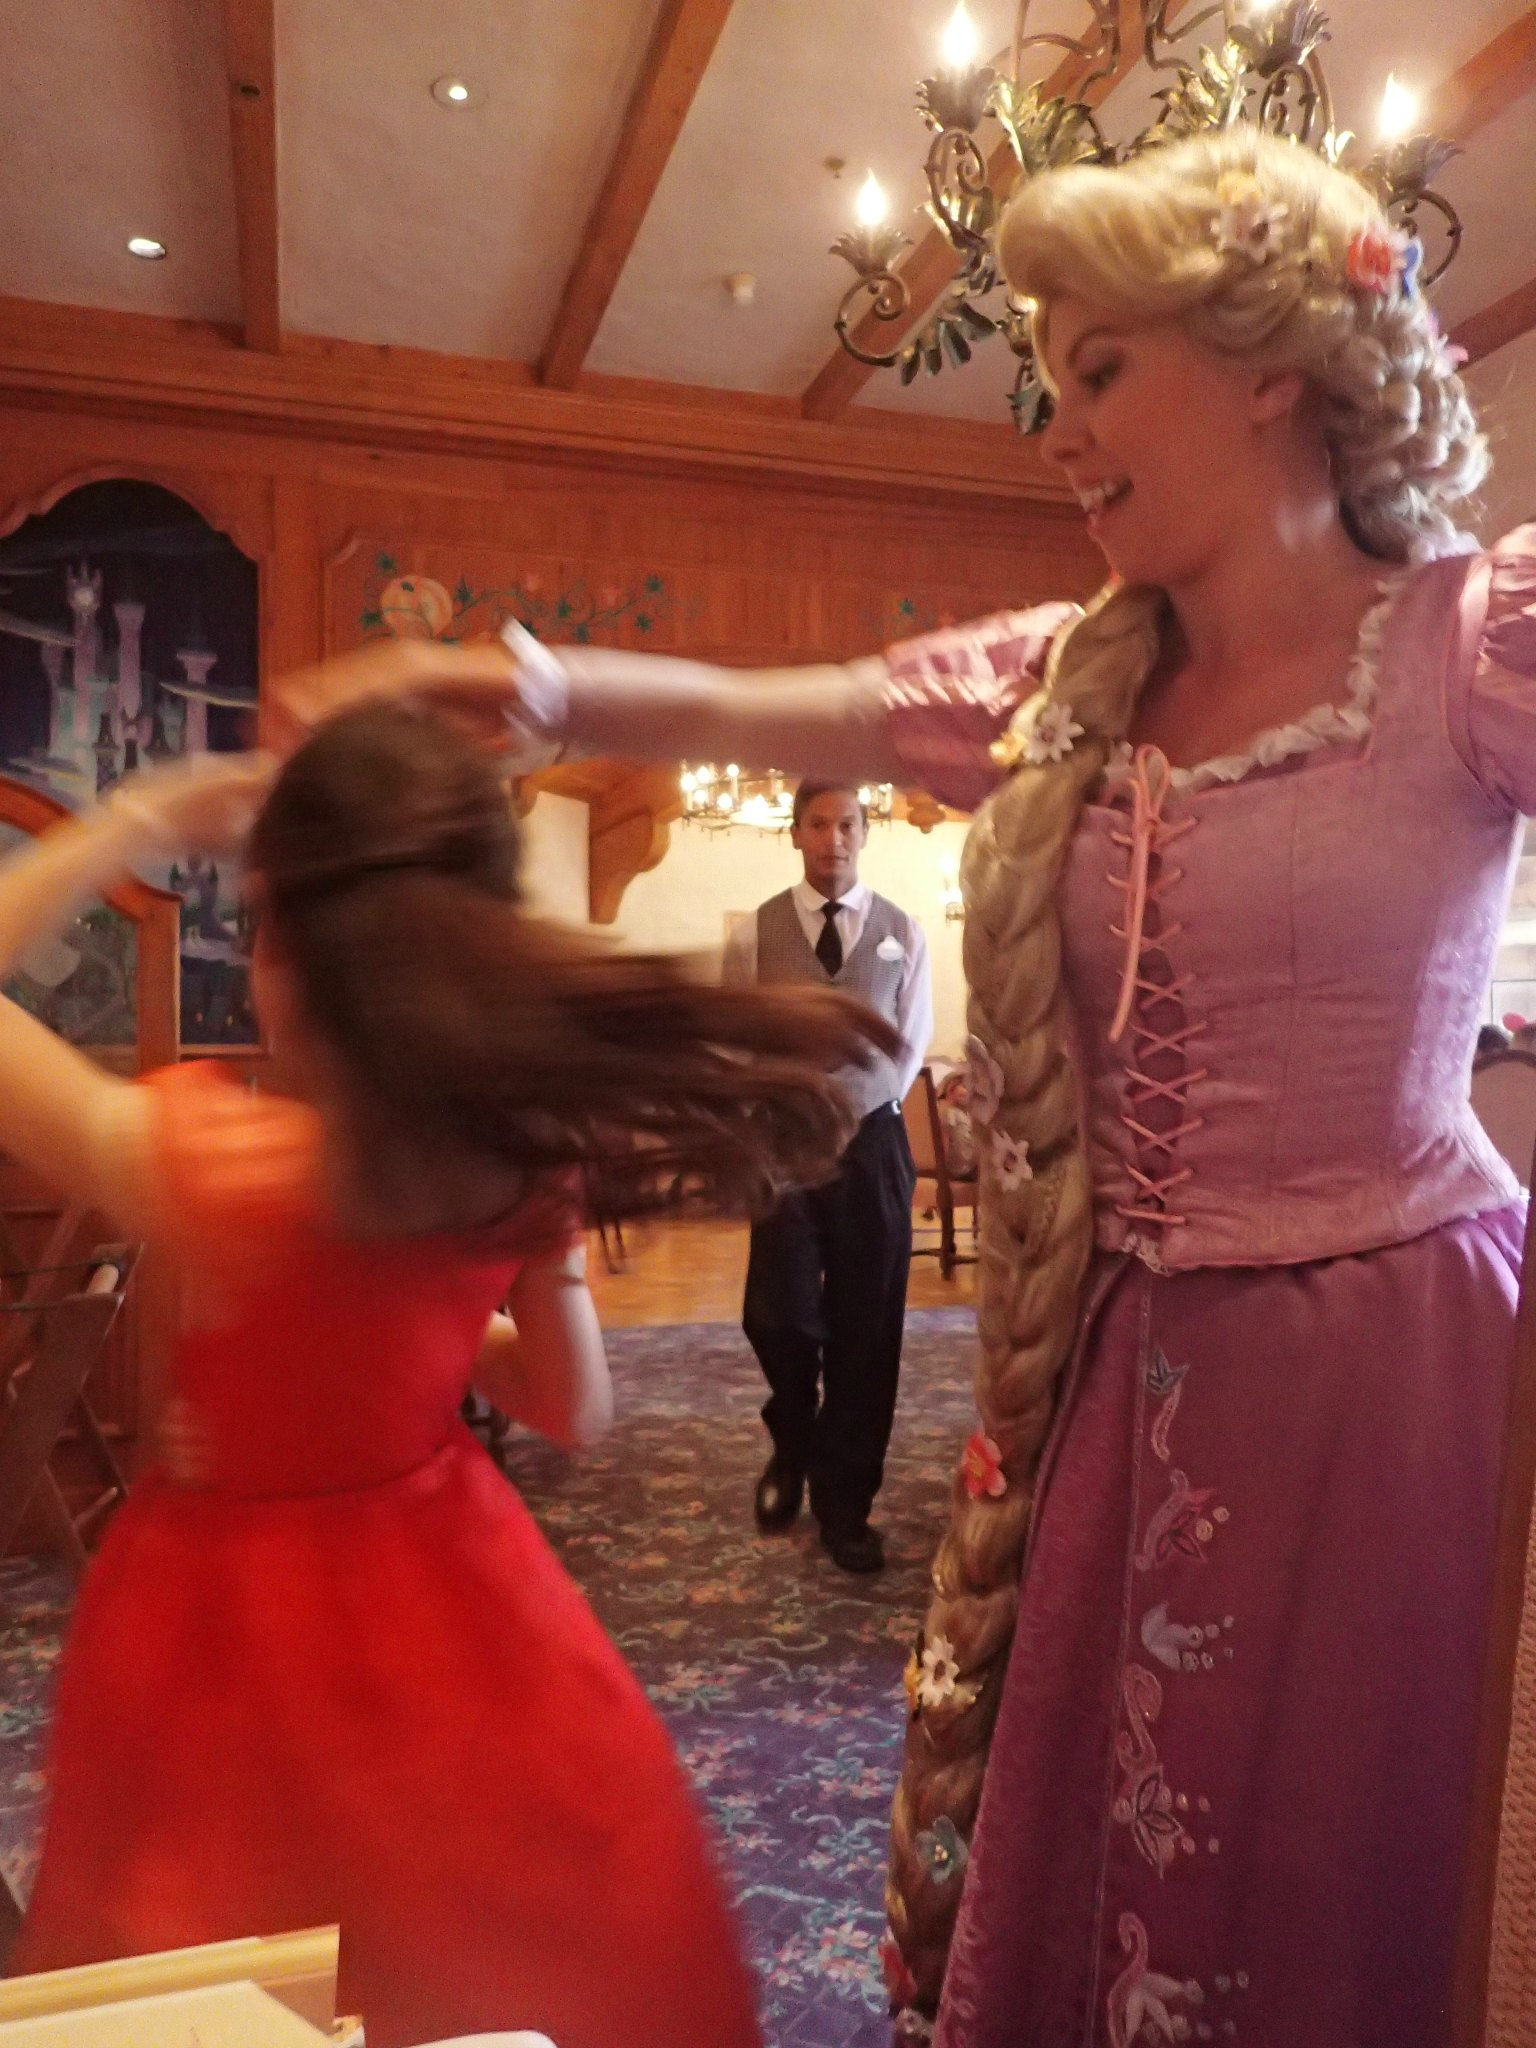 Meeting Rapunzel at Auberge de Cendrillon Restaurant